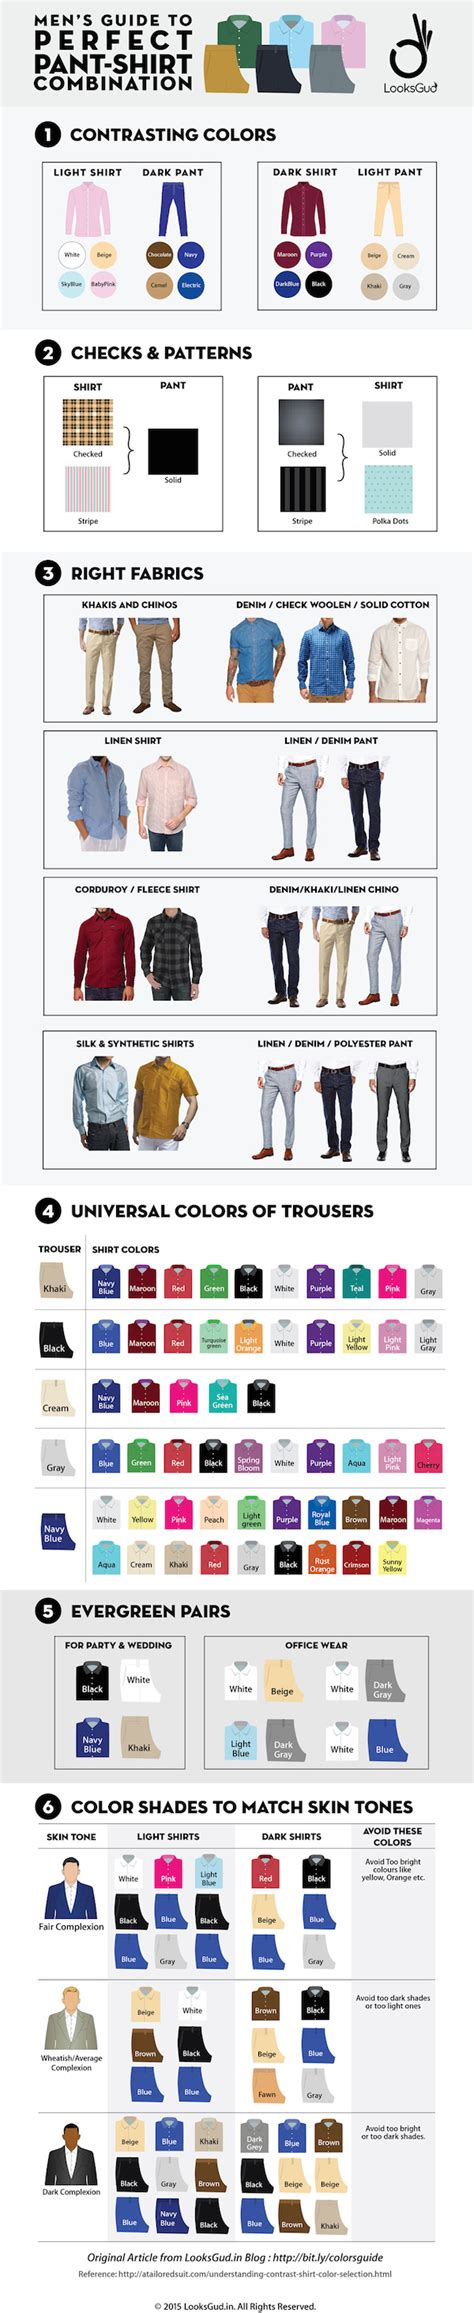 Tshirt Taxi One Groove Denim by Infographic S Wardrobe Guide To Pairing Shirts And